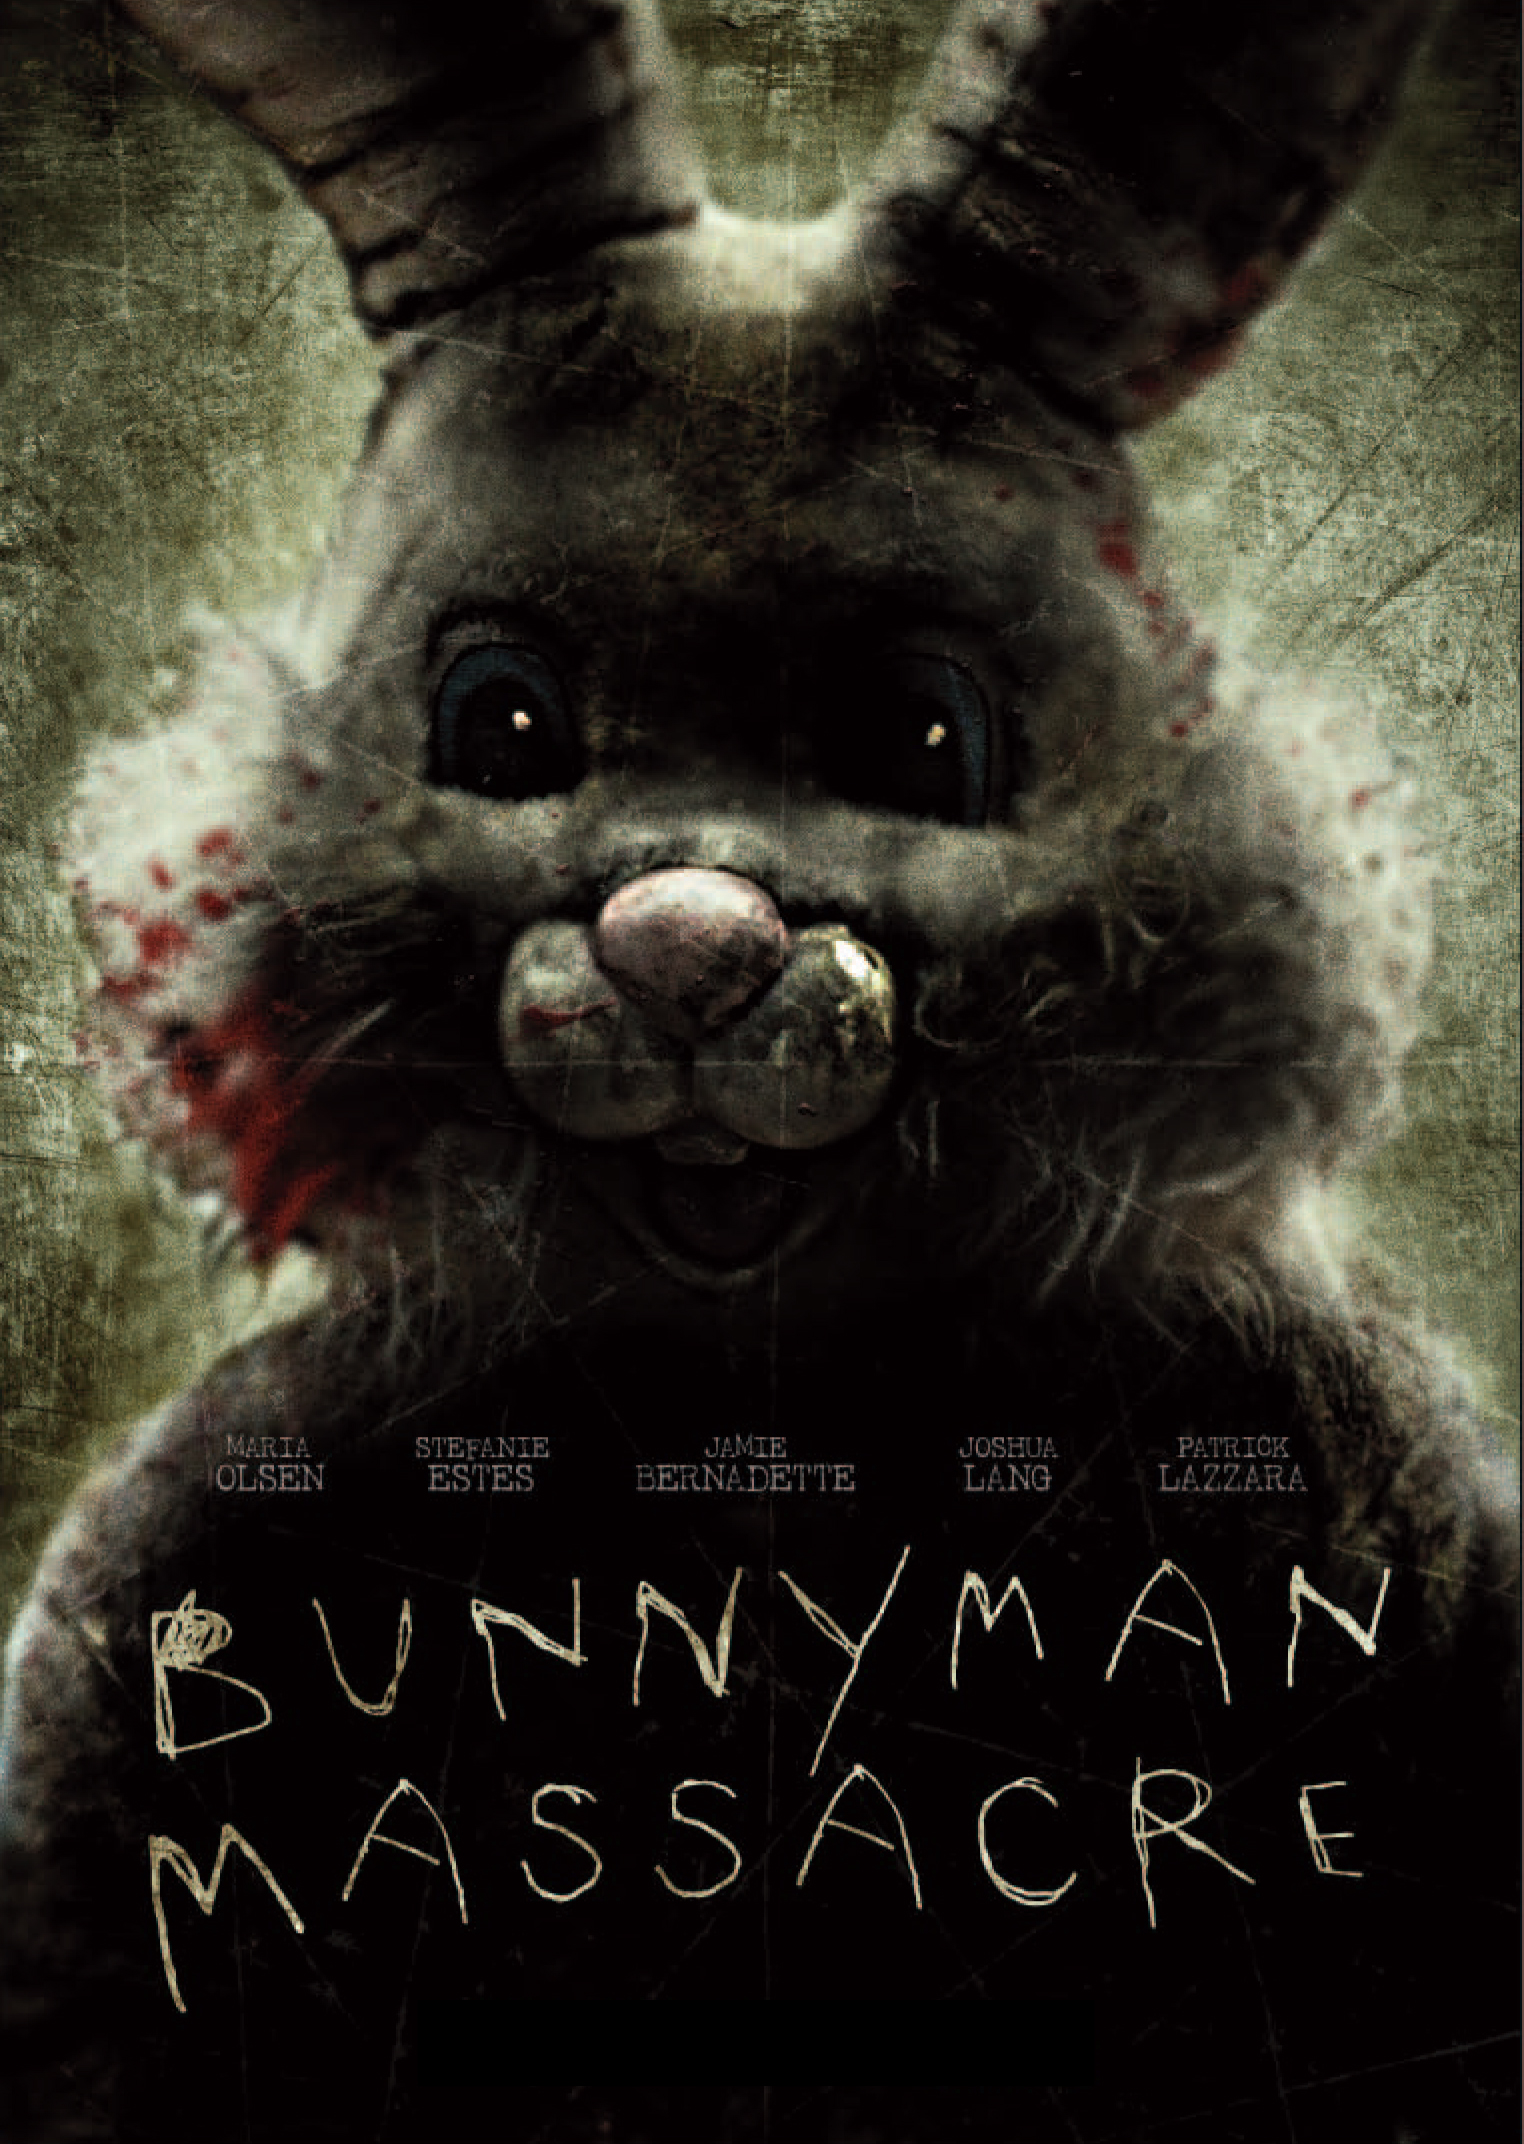 Film Review The Bunnyman Massacre 2014 Hnn